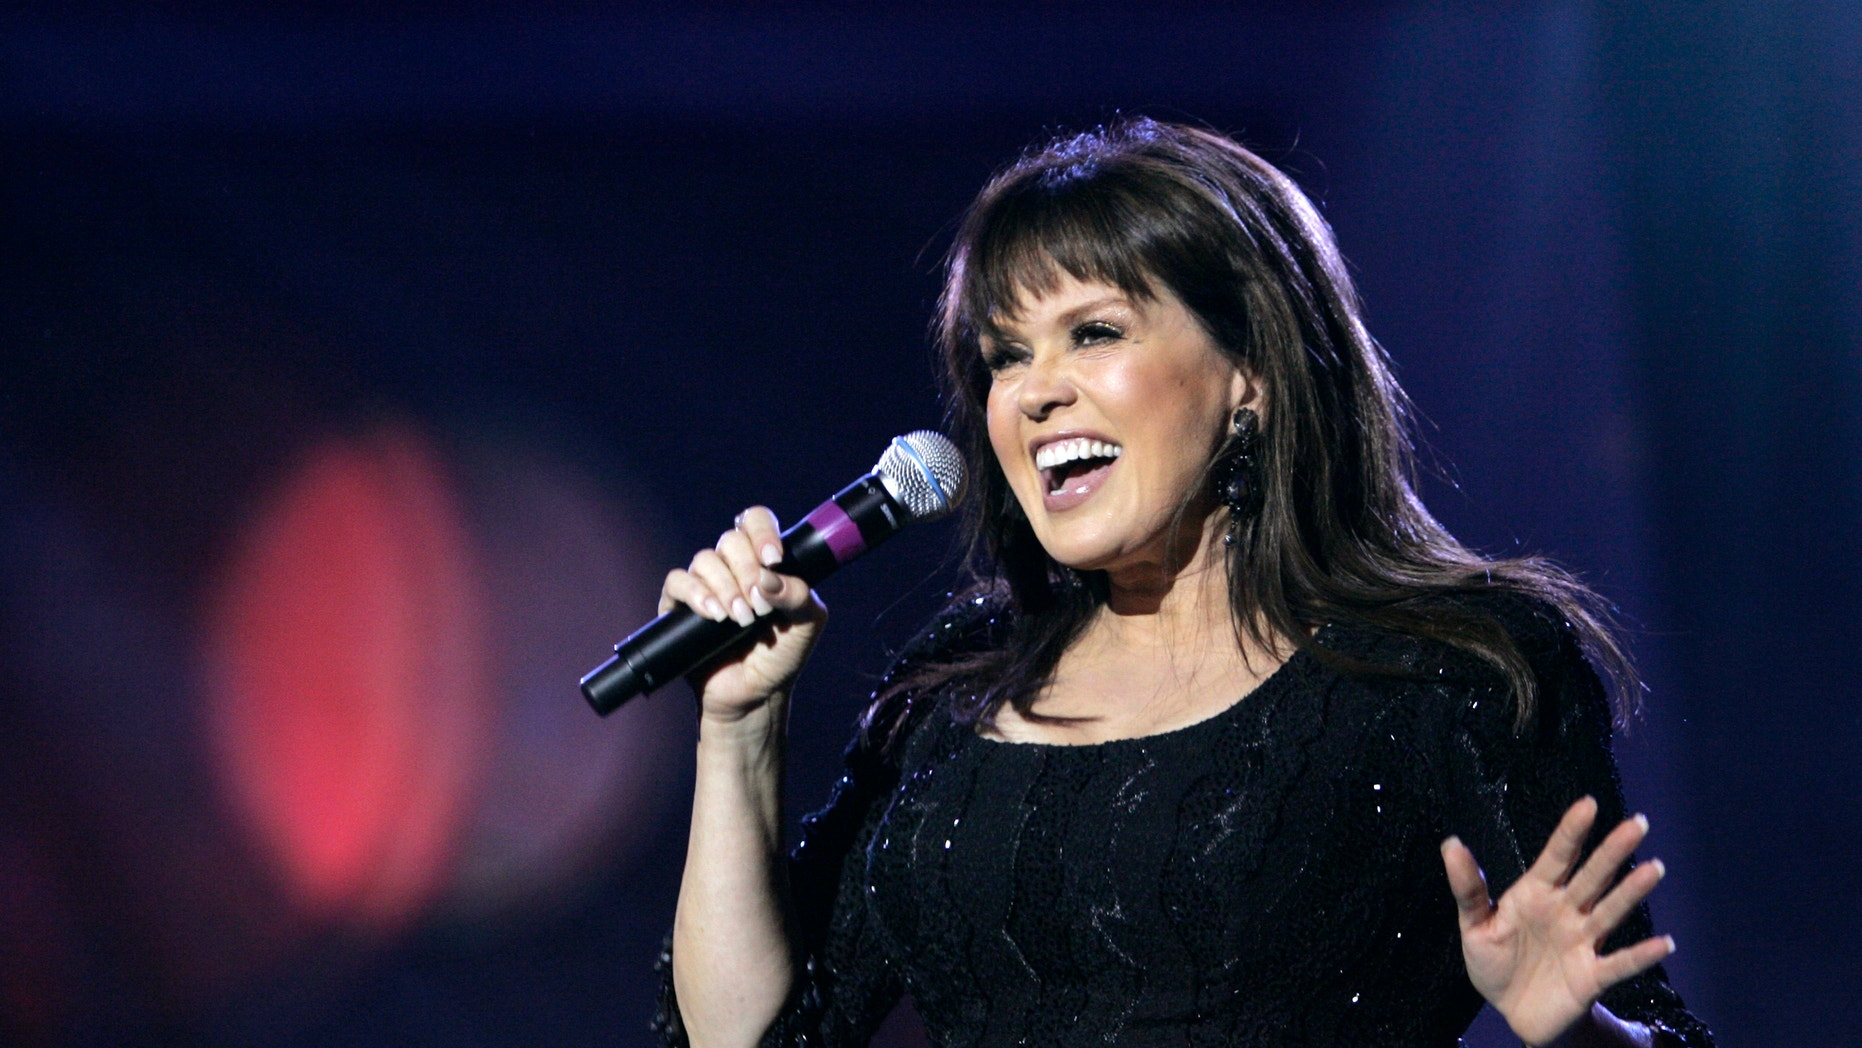 Communication on this topic: Templeton Fox, marie-osmond/